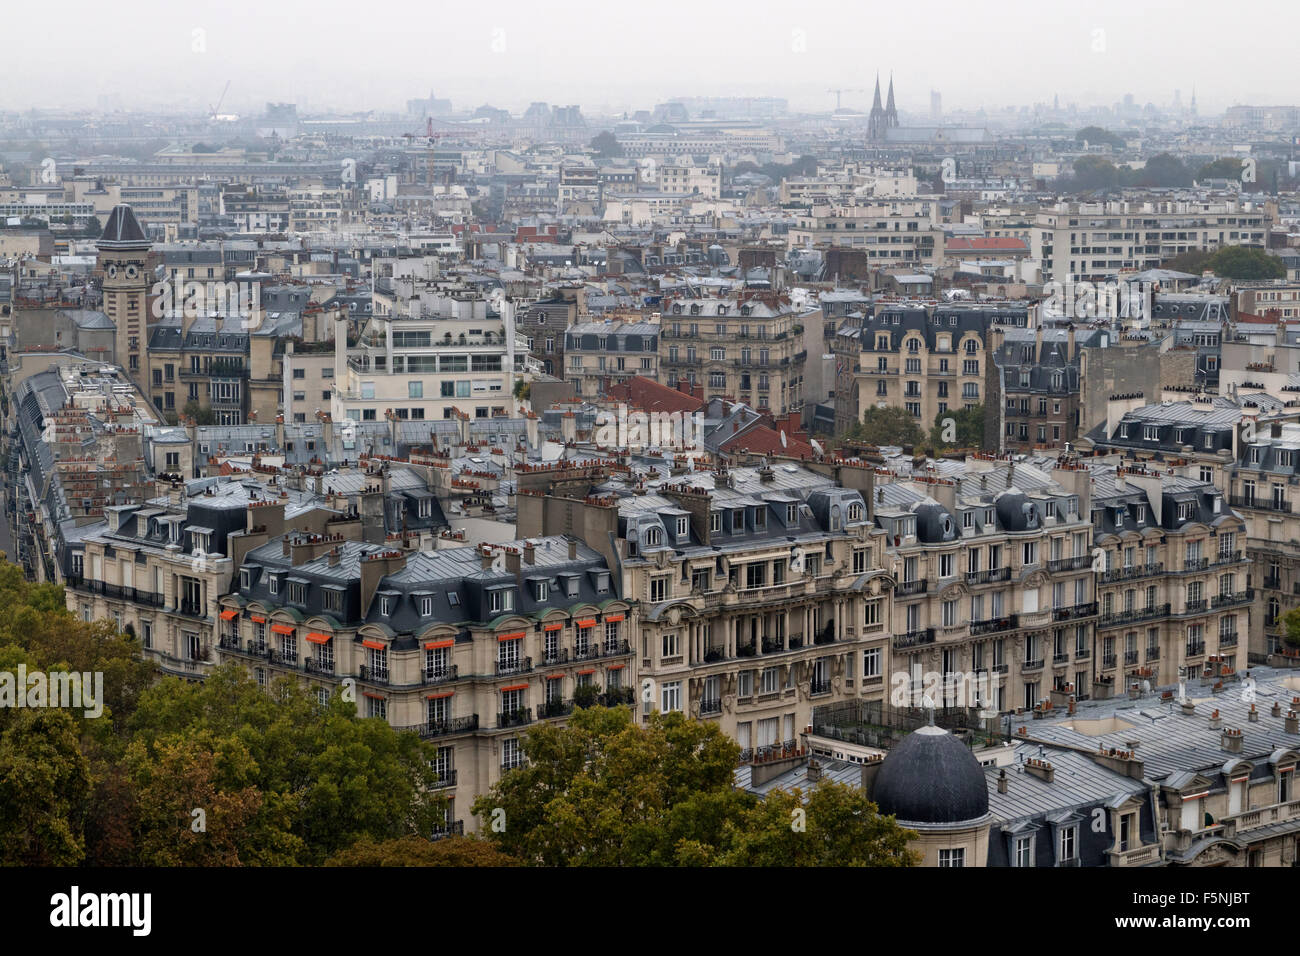 Facades of traditional buildings in autumn in Paris - Stock Image